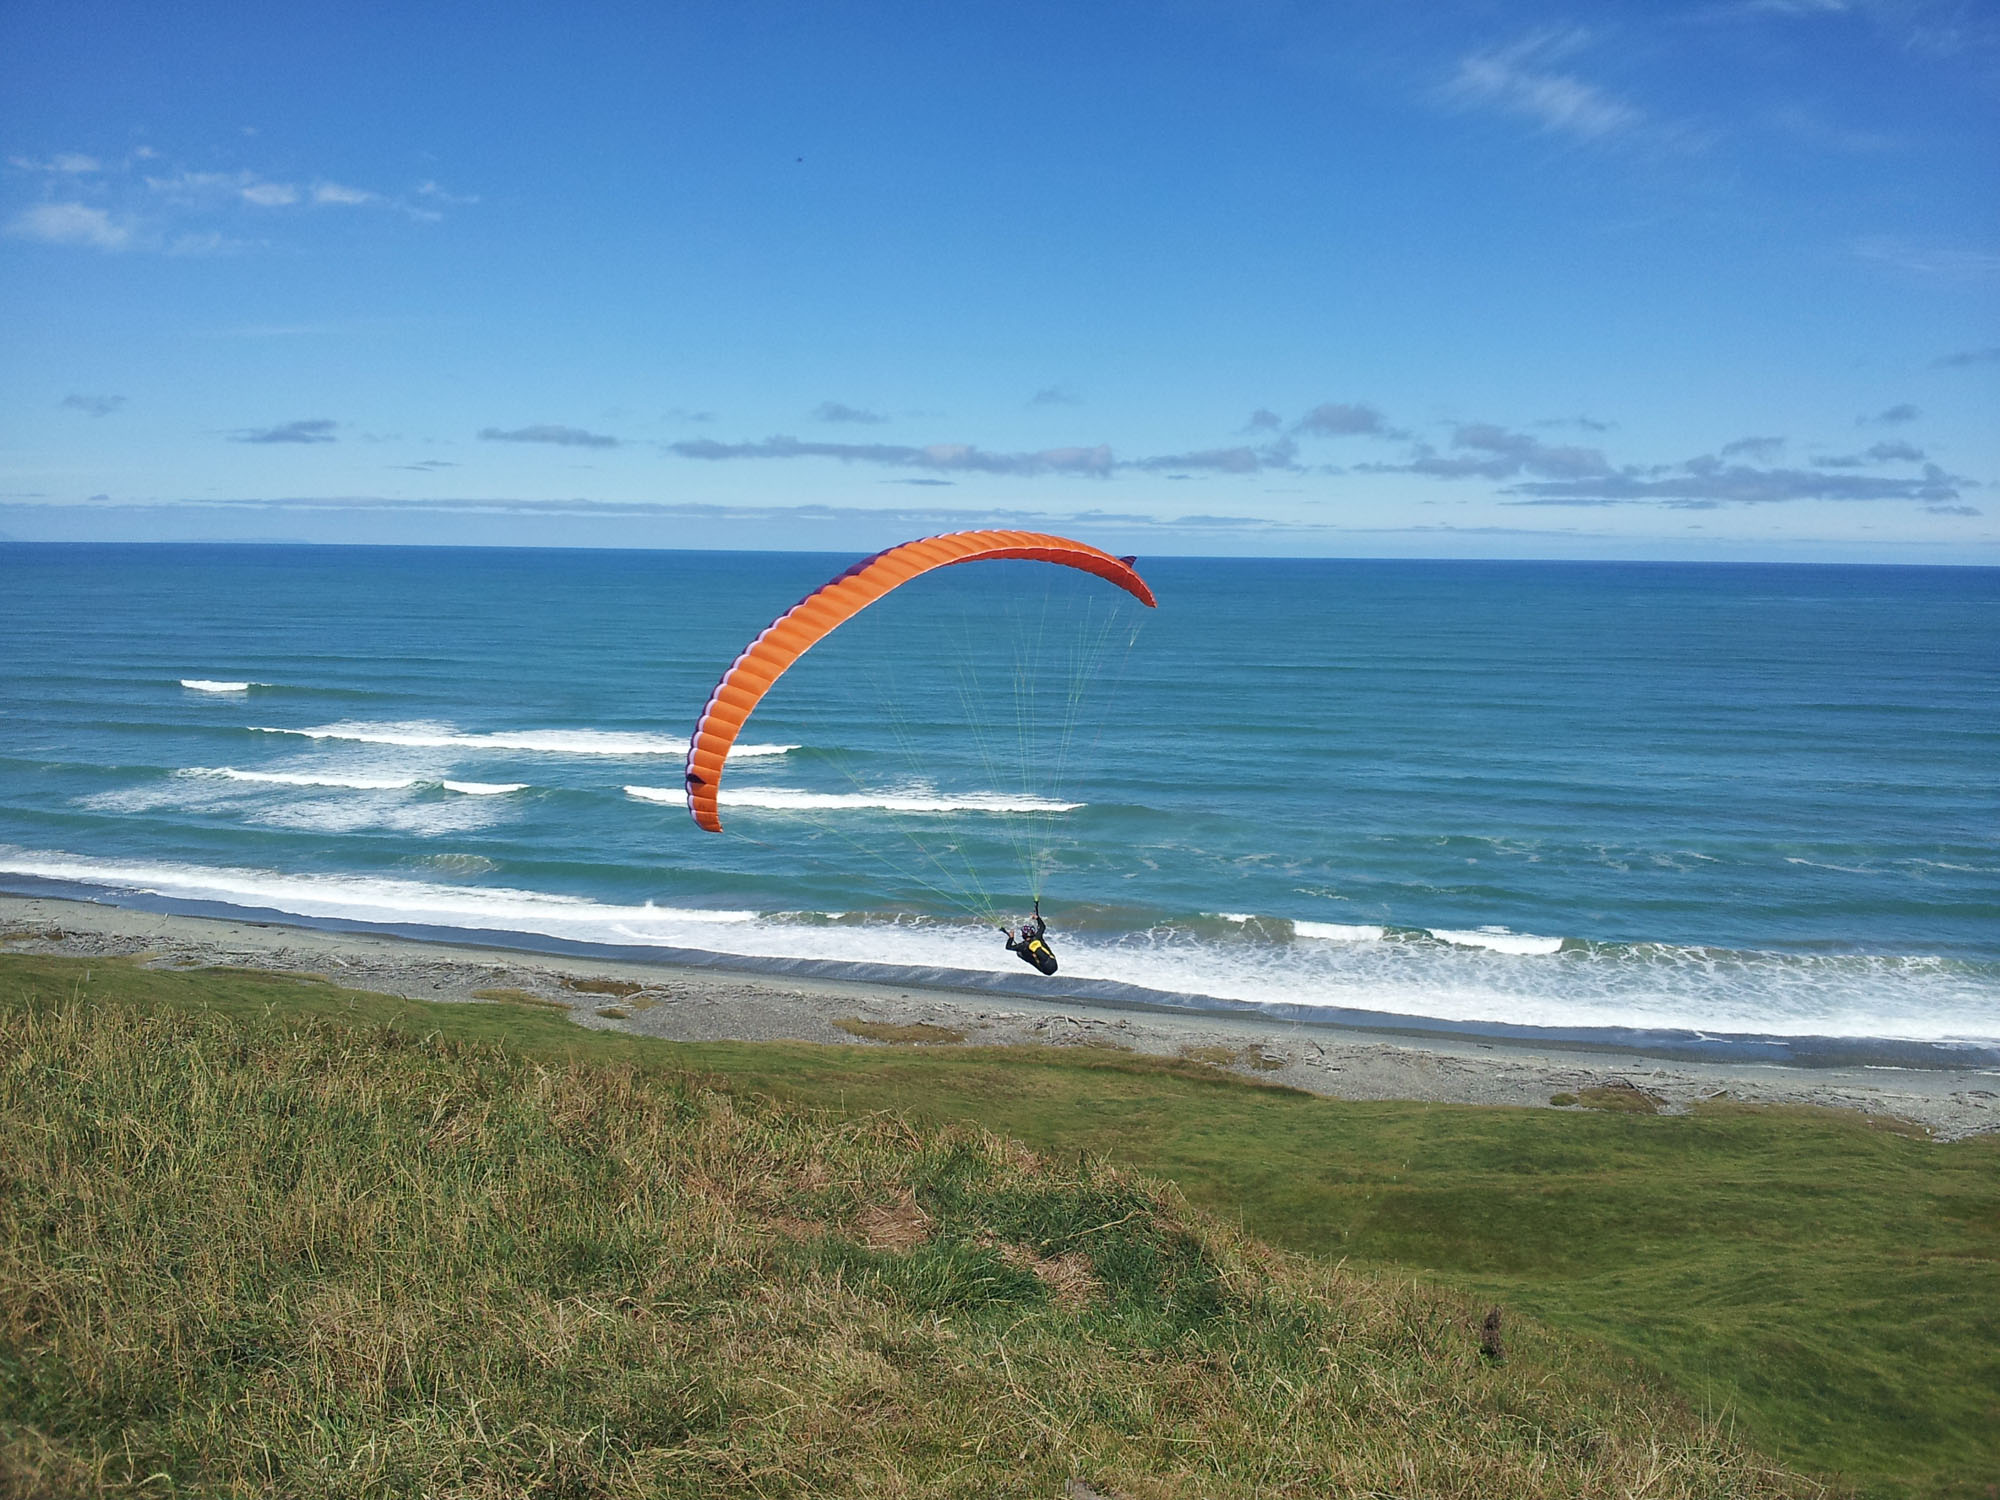 PG1 Course - Infinity Paragliding 10